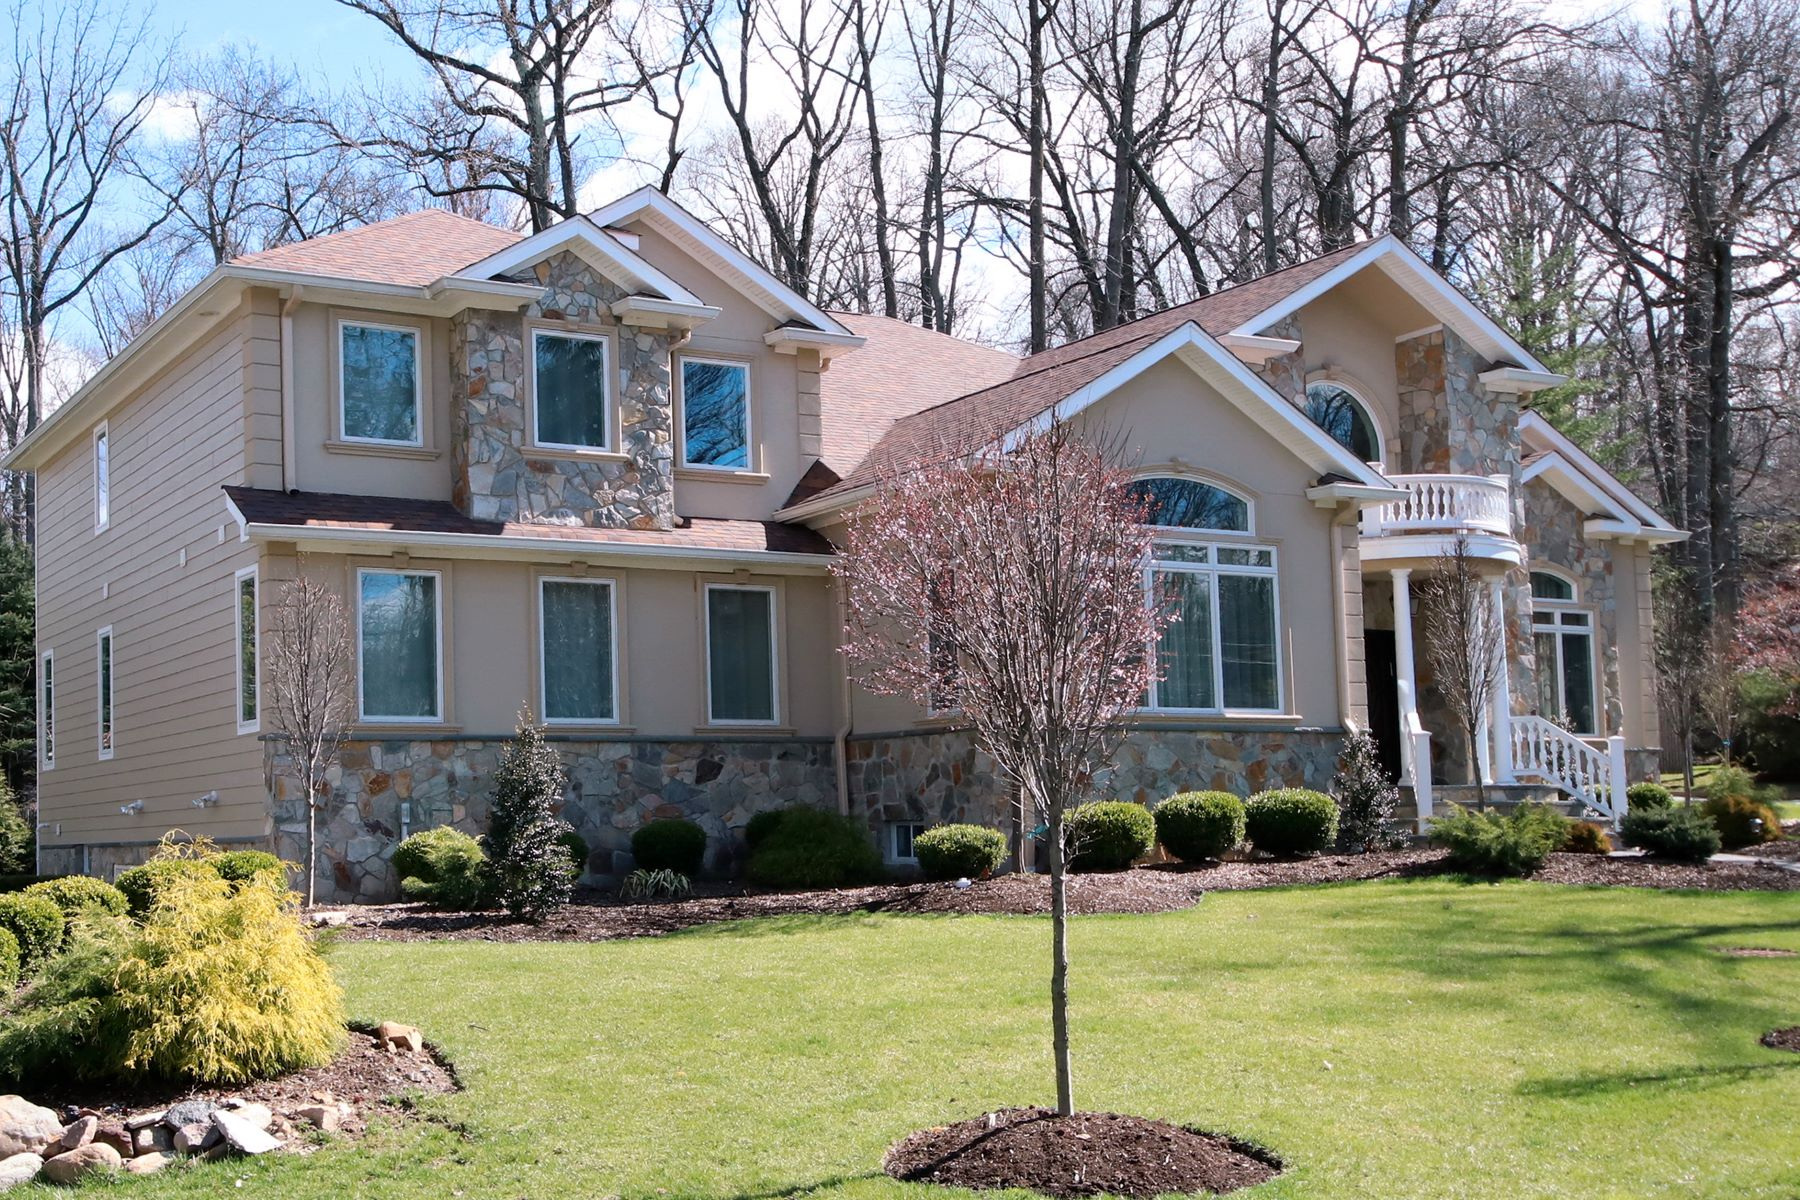 Single Family Homes for Sale at 11 Cypress Street Tenafly, New Jersey 07670 United States